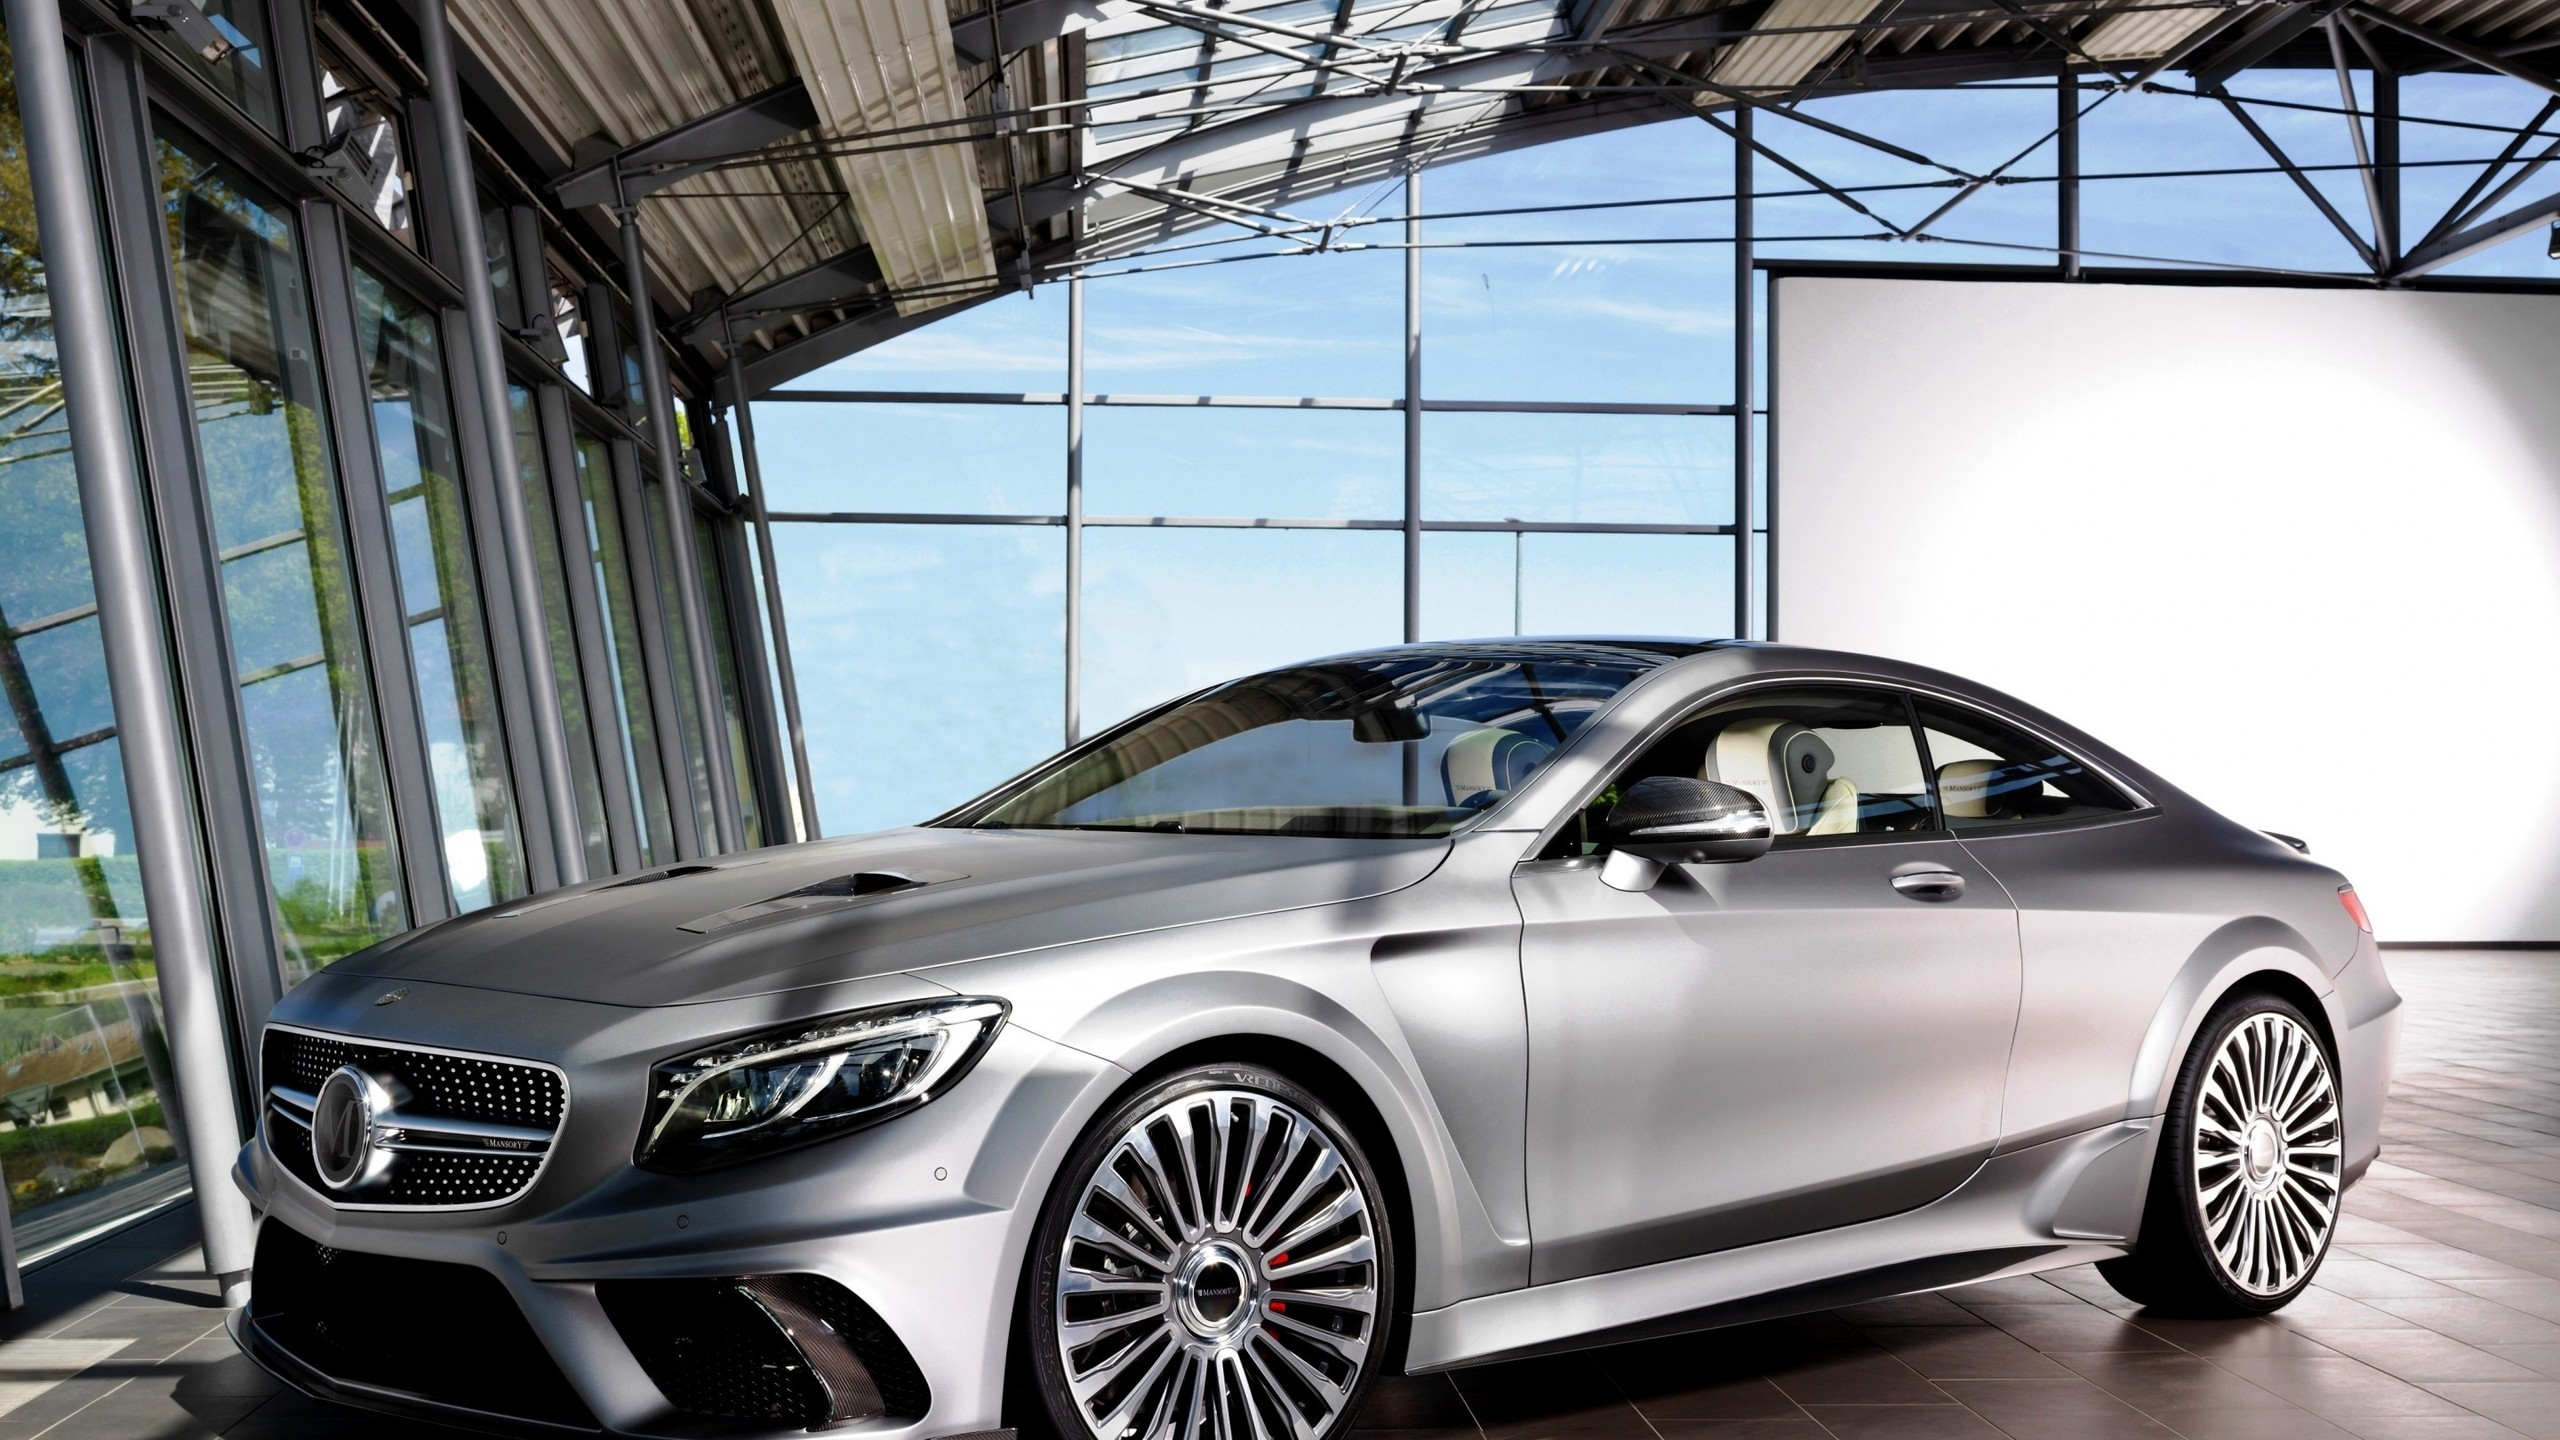 Mansory S 63 AMG Diamond Edition for 2560x1440 HDTV resolution